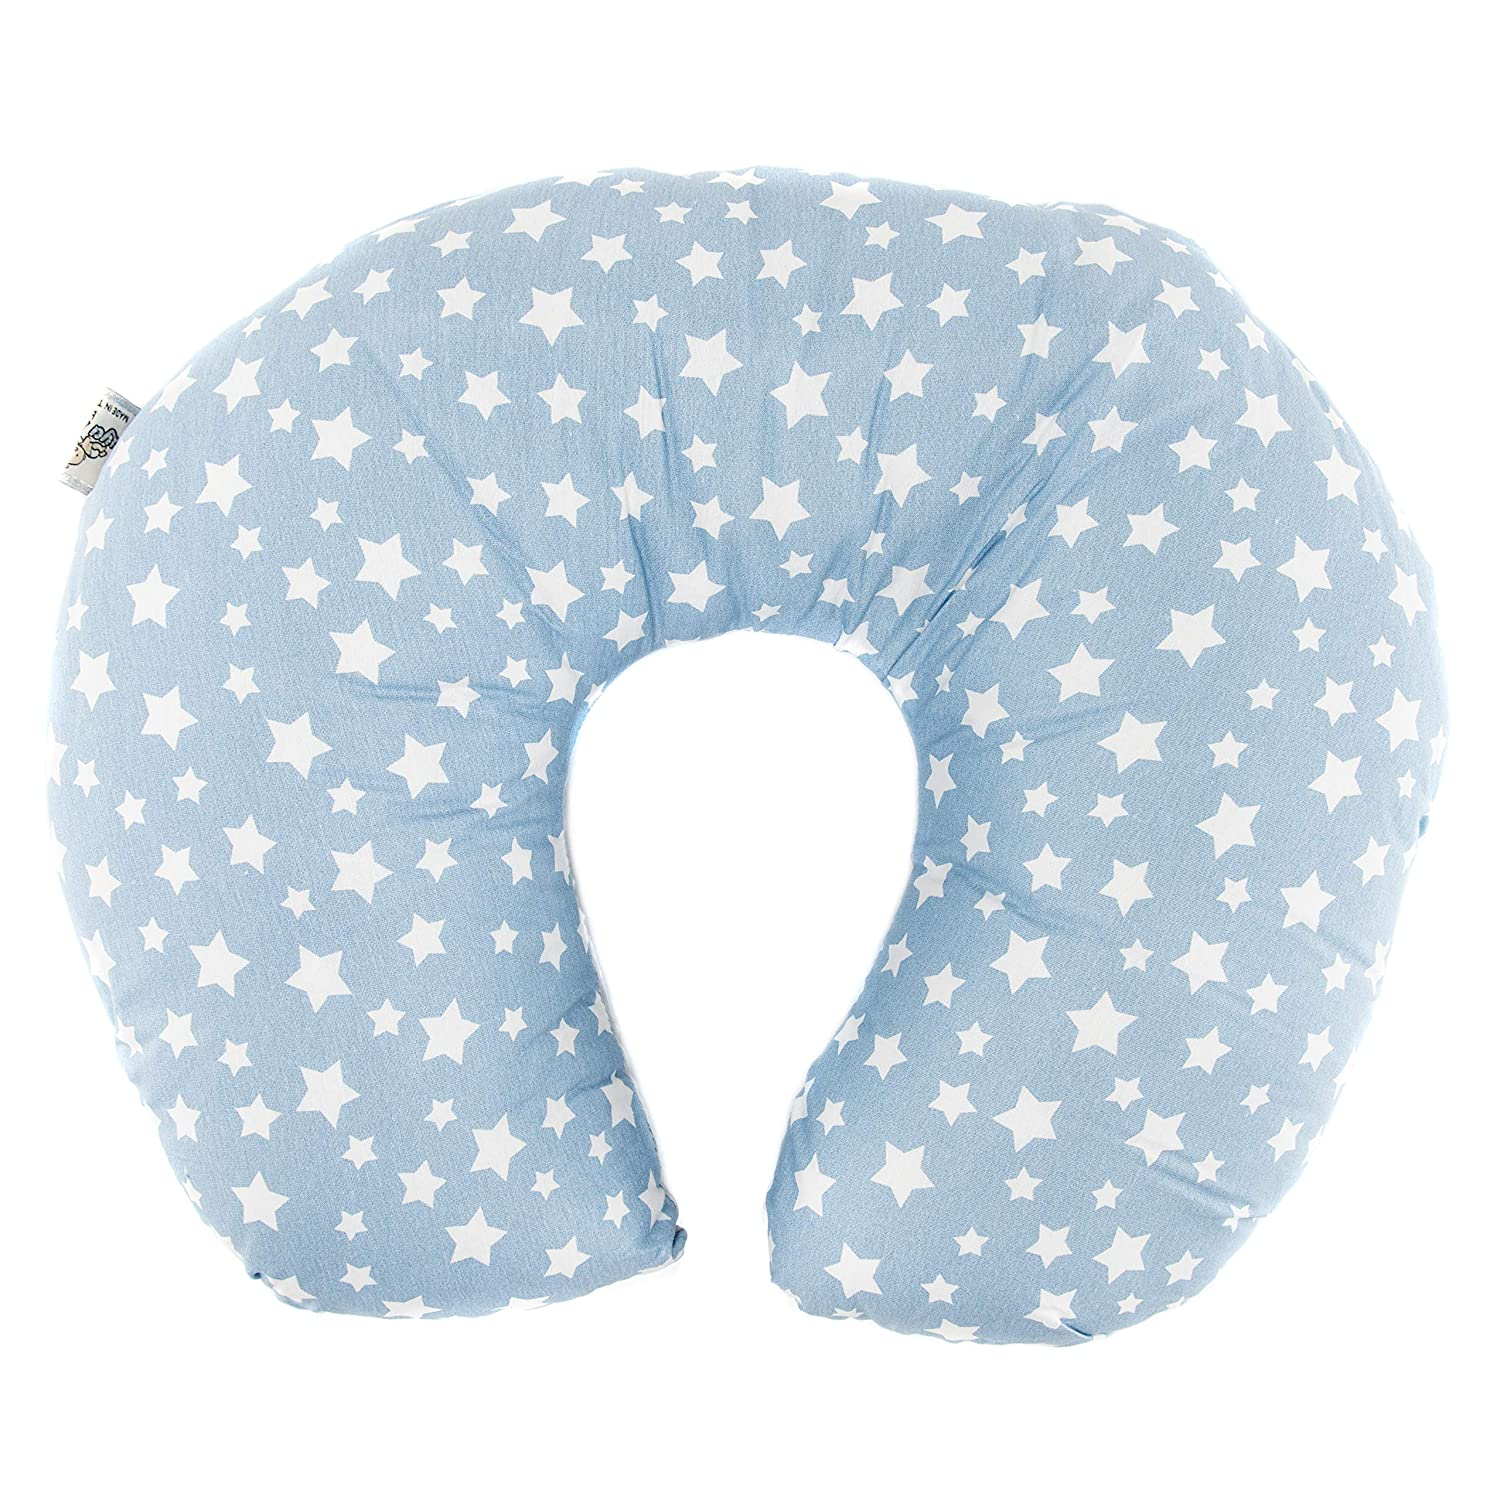 Nursing Pillow with Cover from Atlantis Baby (Double Sided) Atlantis Bazaar